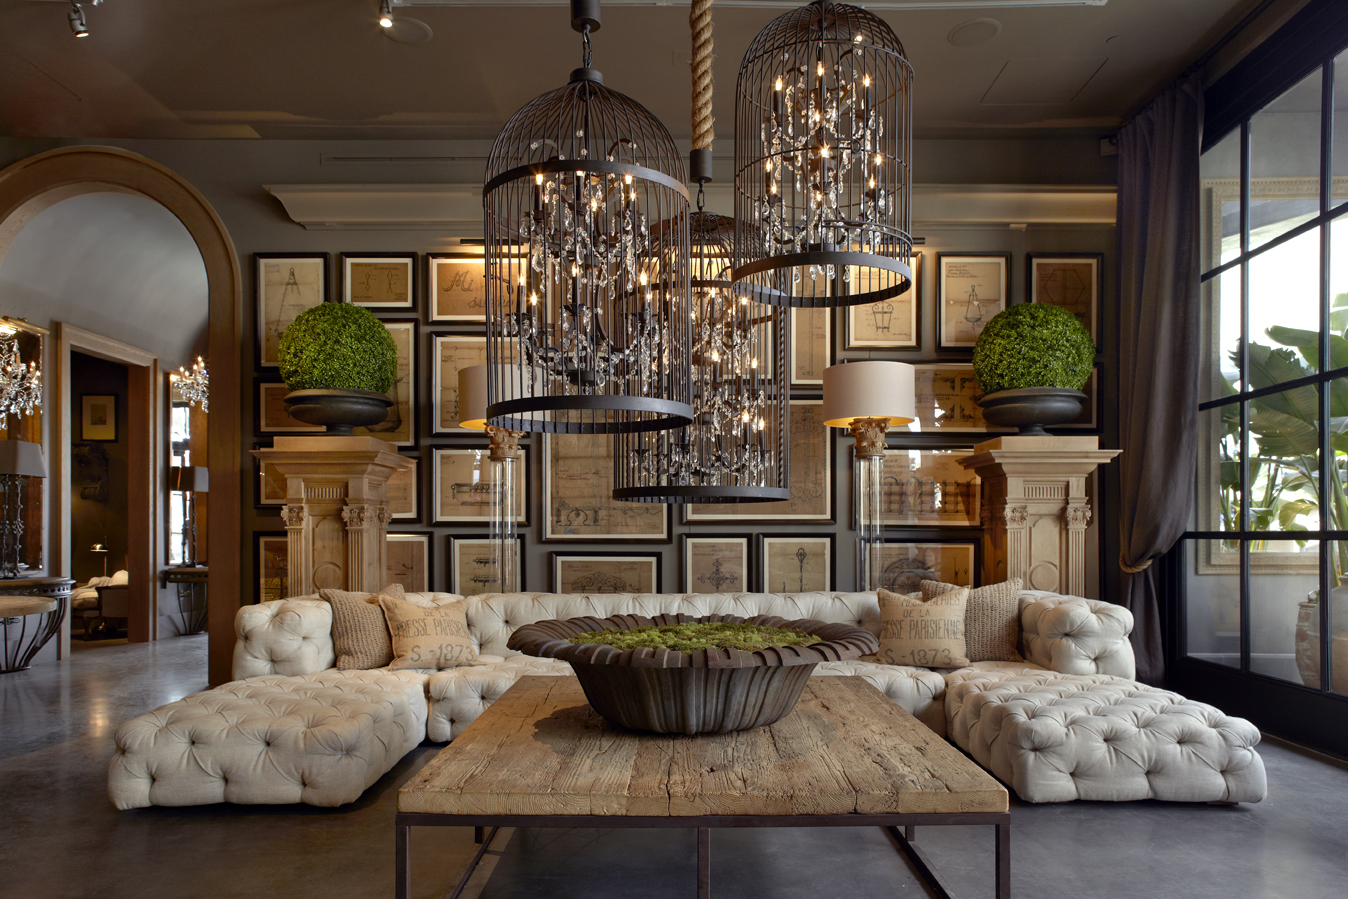 File Restoration Hardware 11 12 11 Wikimedia Commons